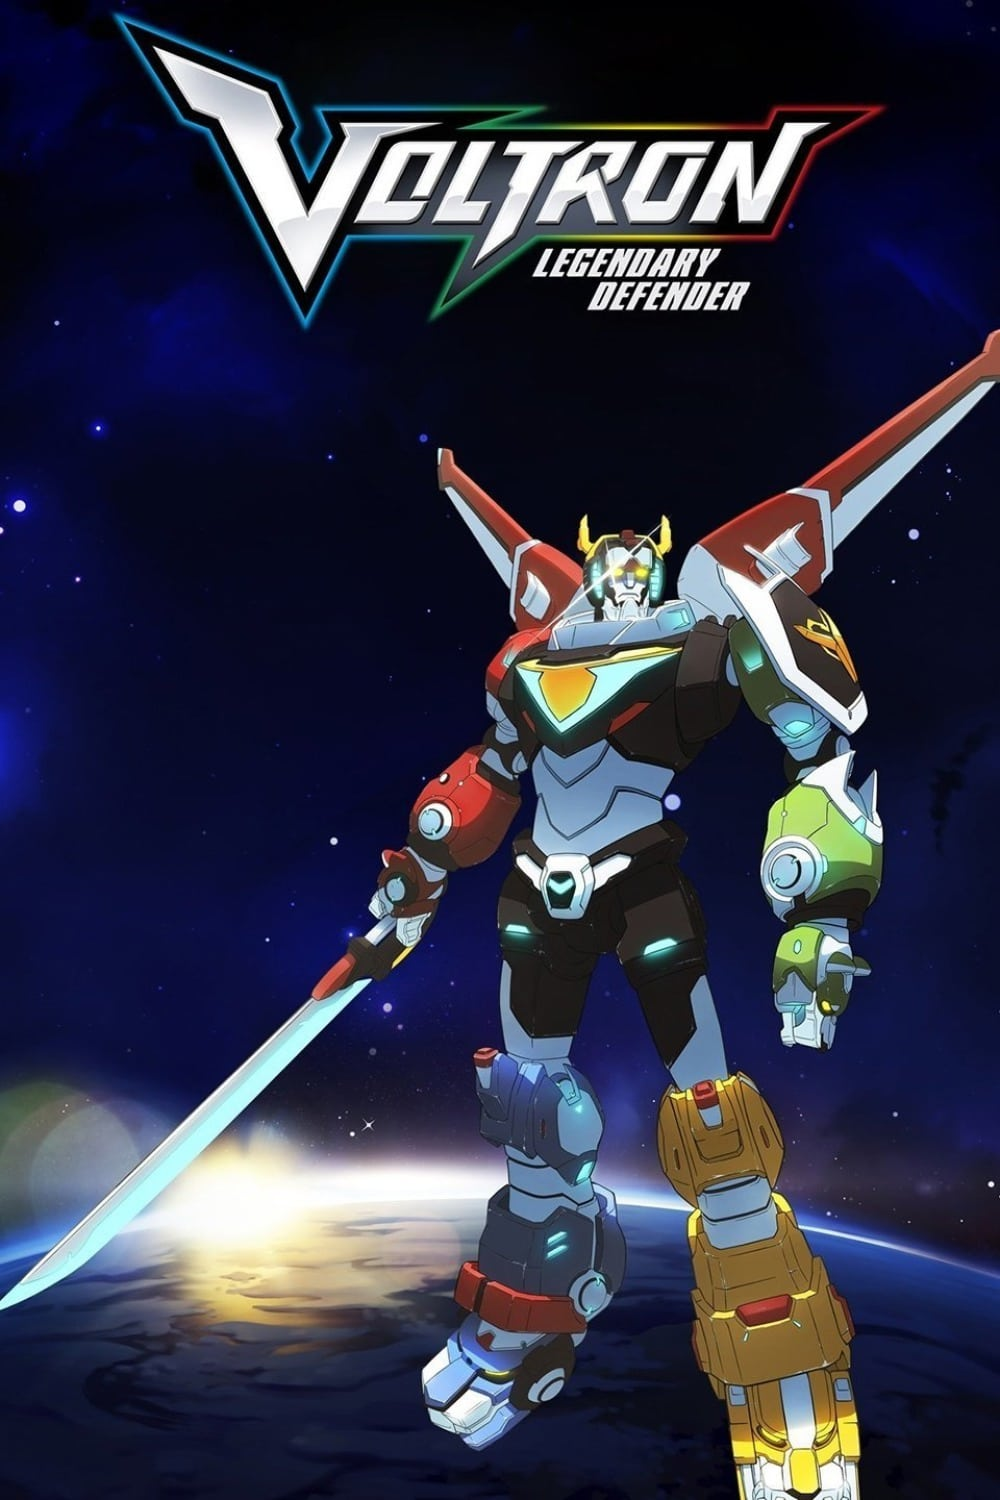 Voltron: El defensor legendario' />